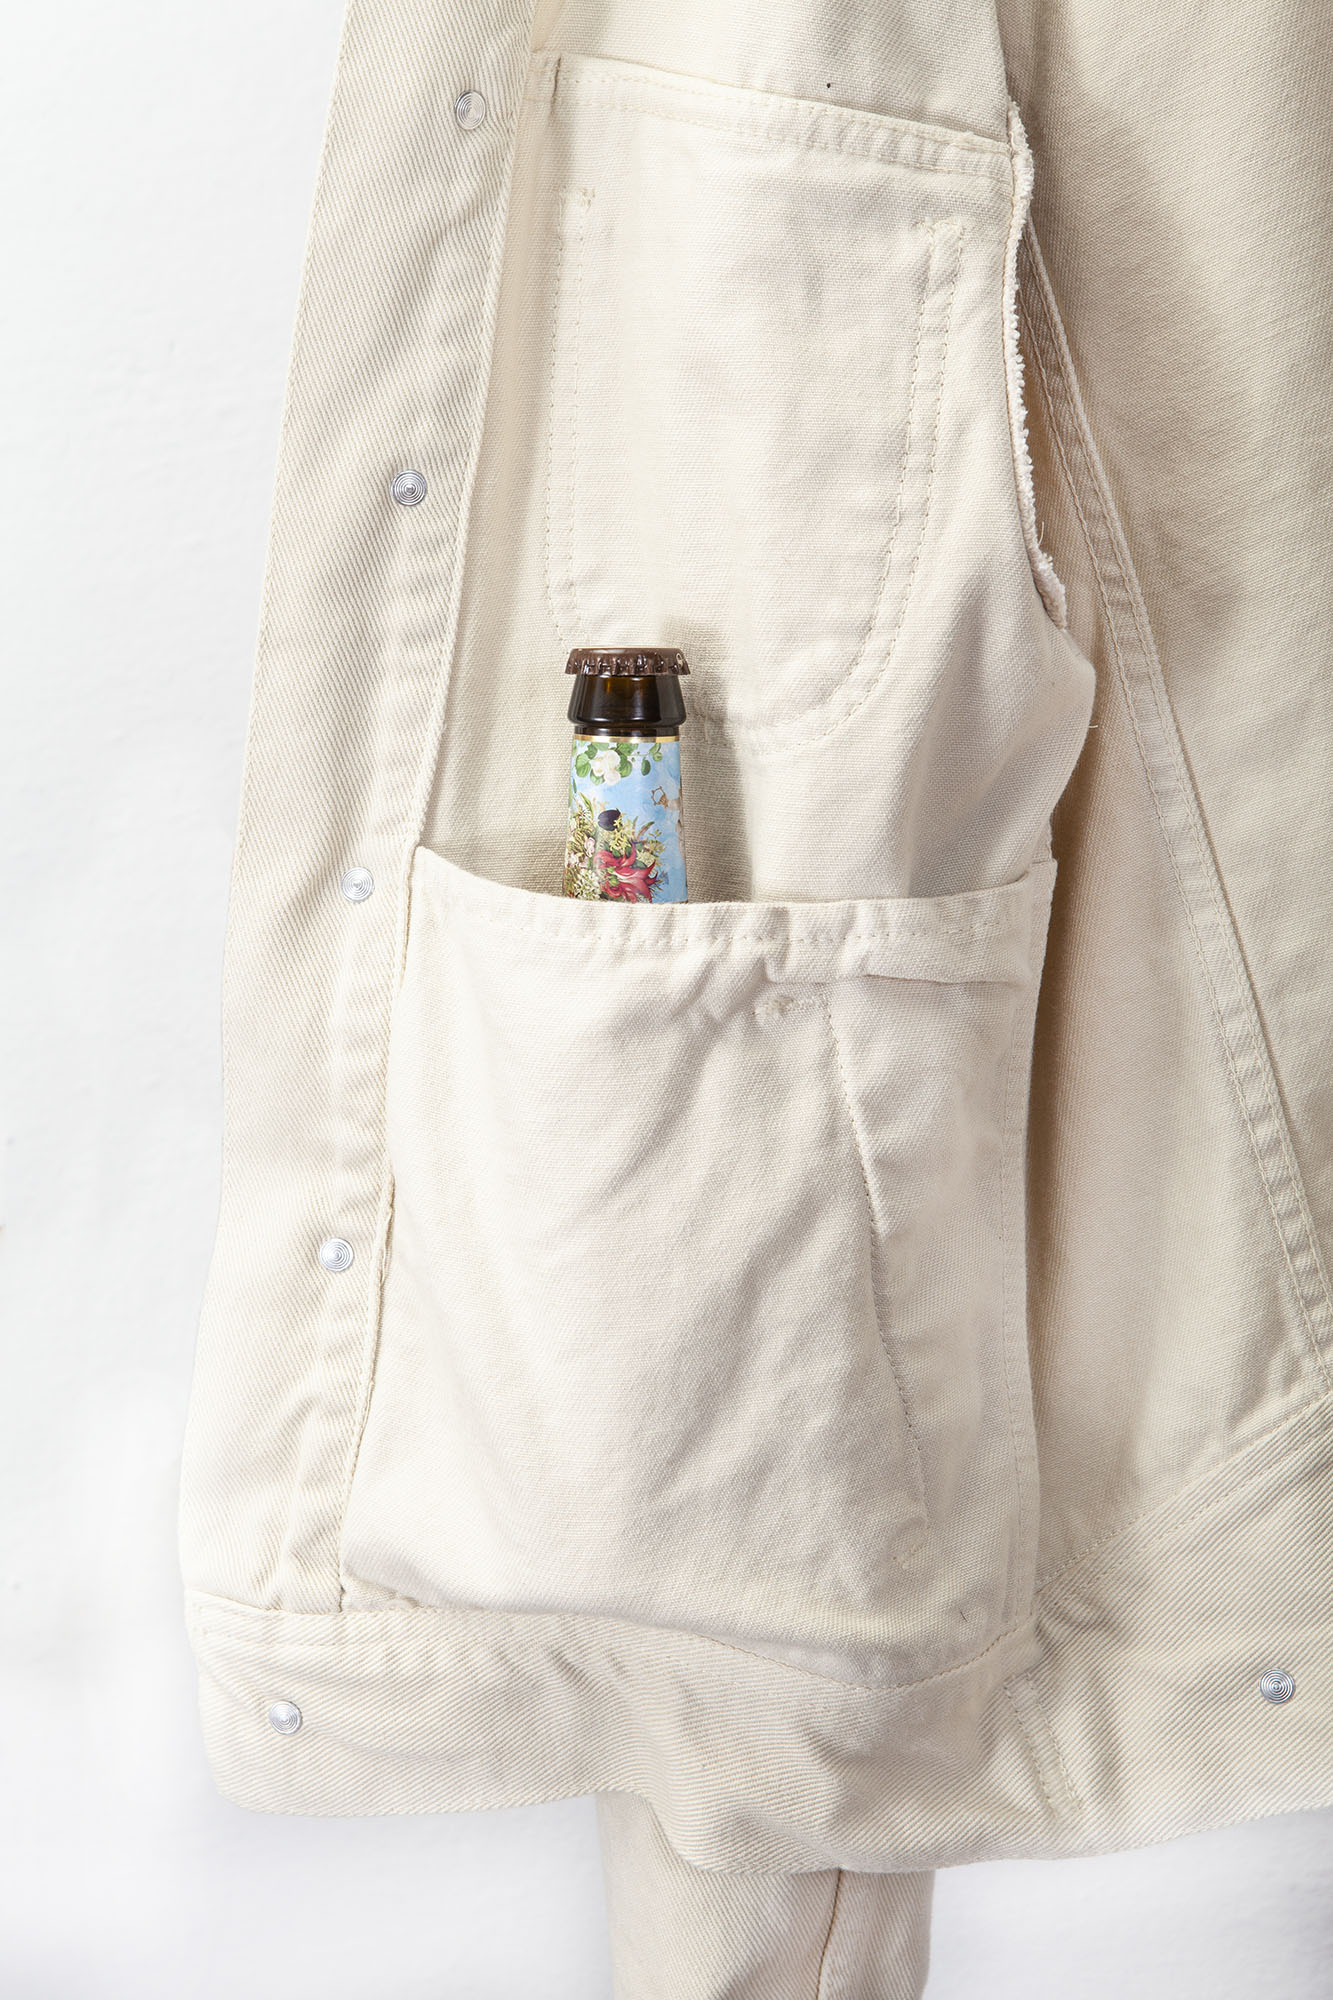 shangri-la-heritage-single-rider-ivory-canvas-jacket-still-life-inner-pocket